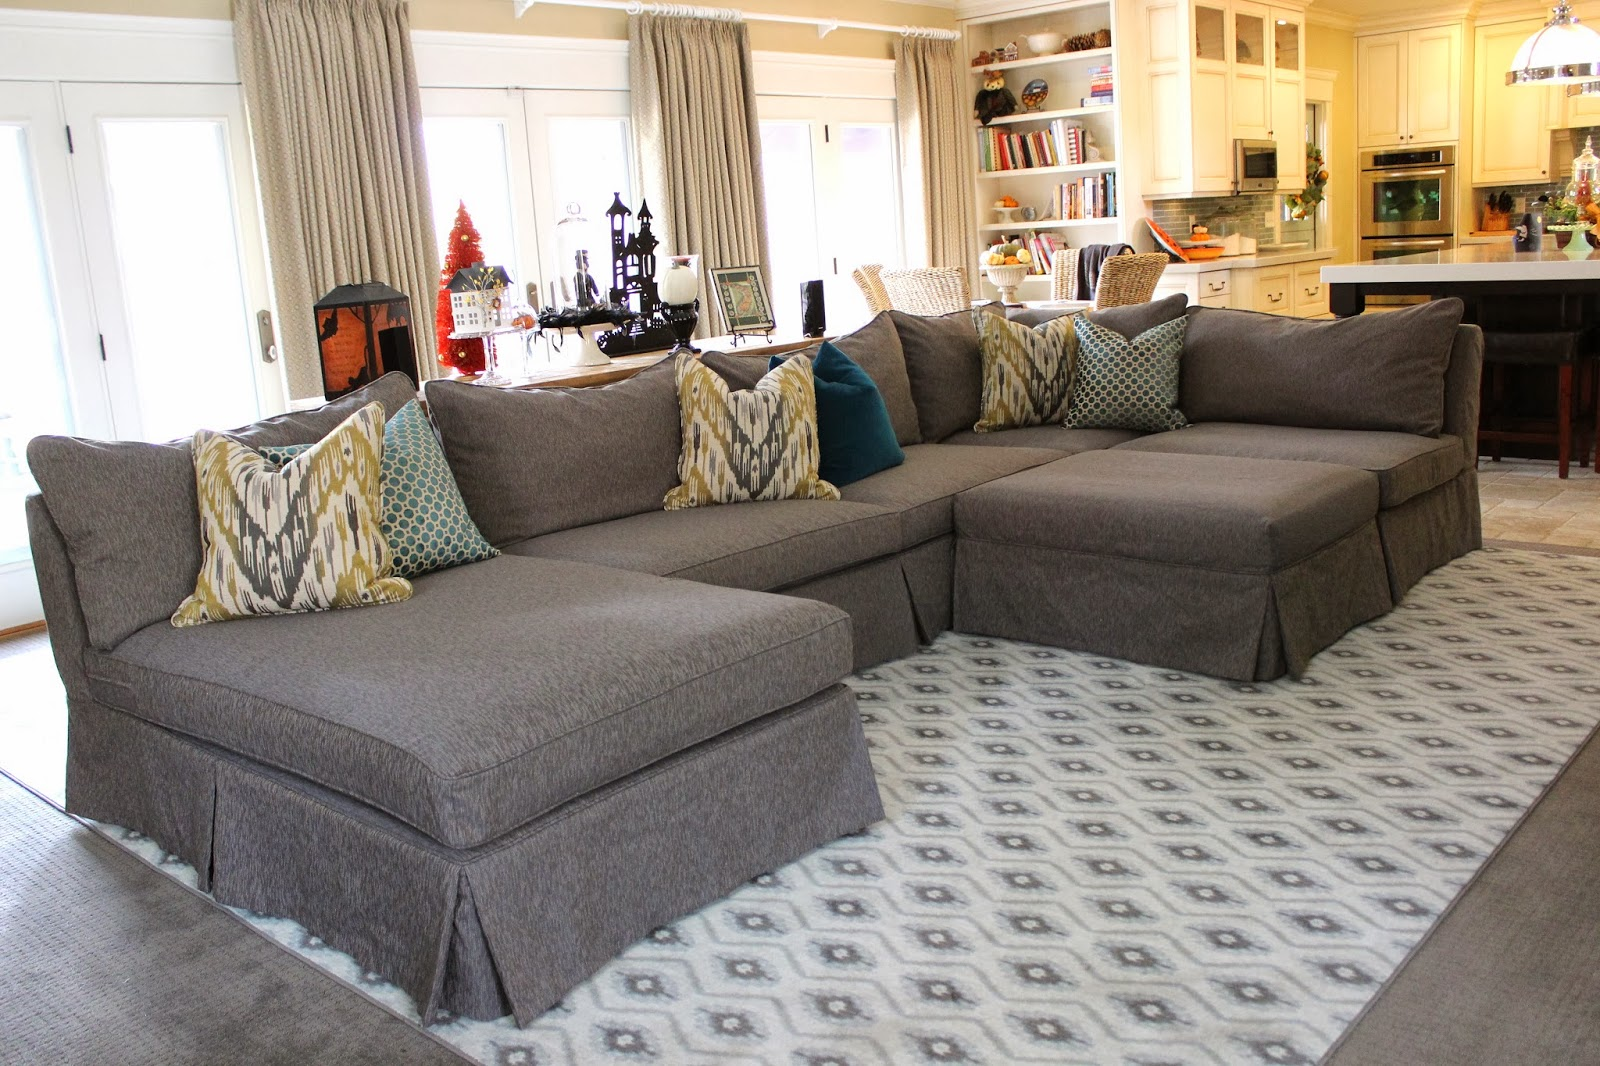 Excellent Awesome Slipcovers For Sectional Couches Homesfeed Alphanode Cool Chair Designs And Ideas Alphanodeonline